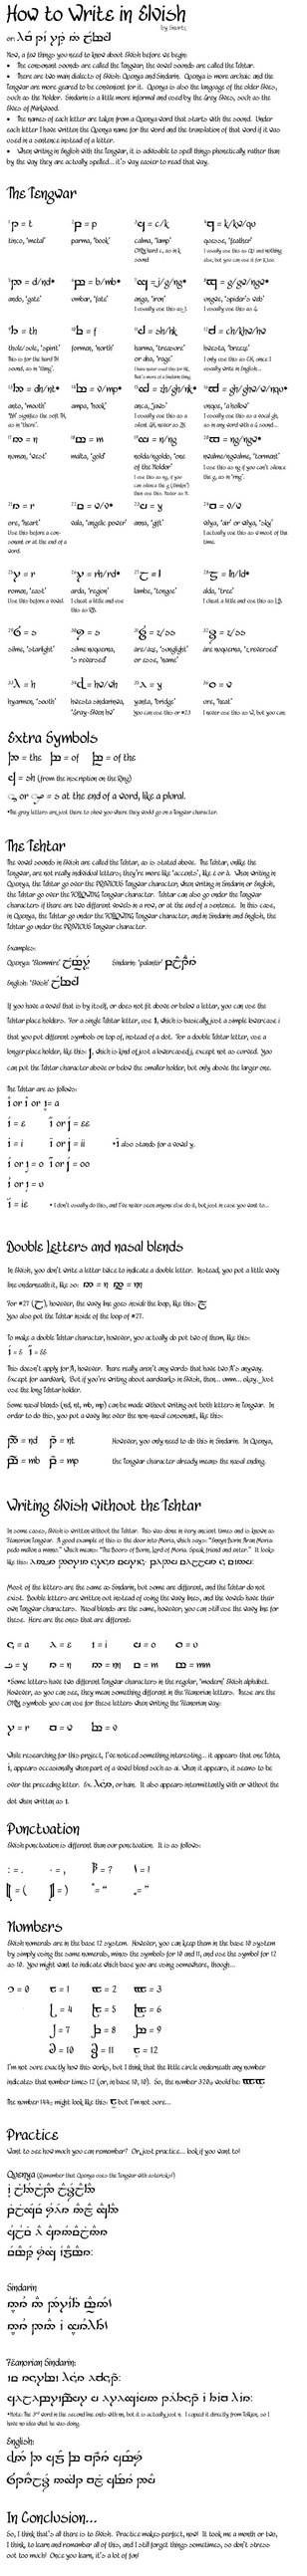 How to read and write gaelic - How To Write In Elvish Way Cool